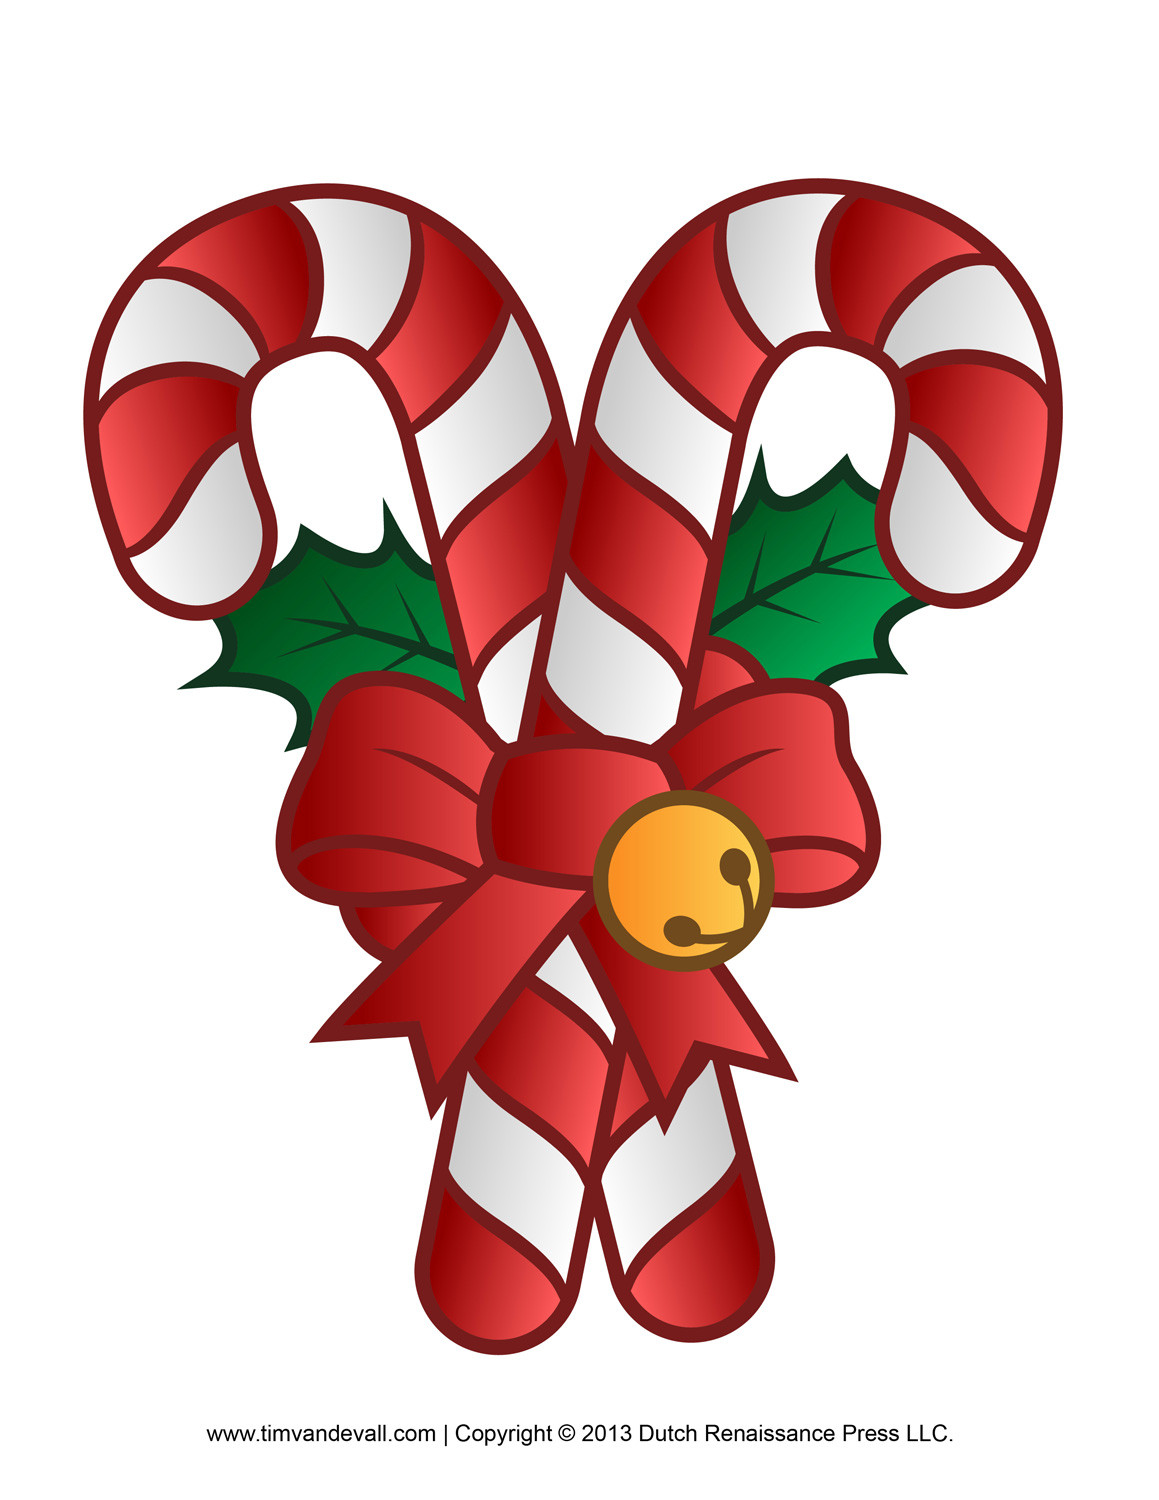 Christmas Candy Clip Art  Free Candy Cane Template Printables Clip Art & Decorations